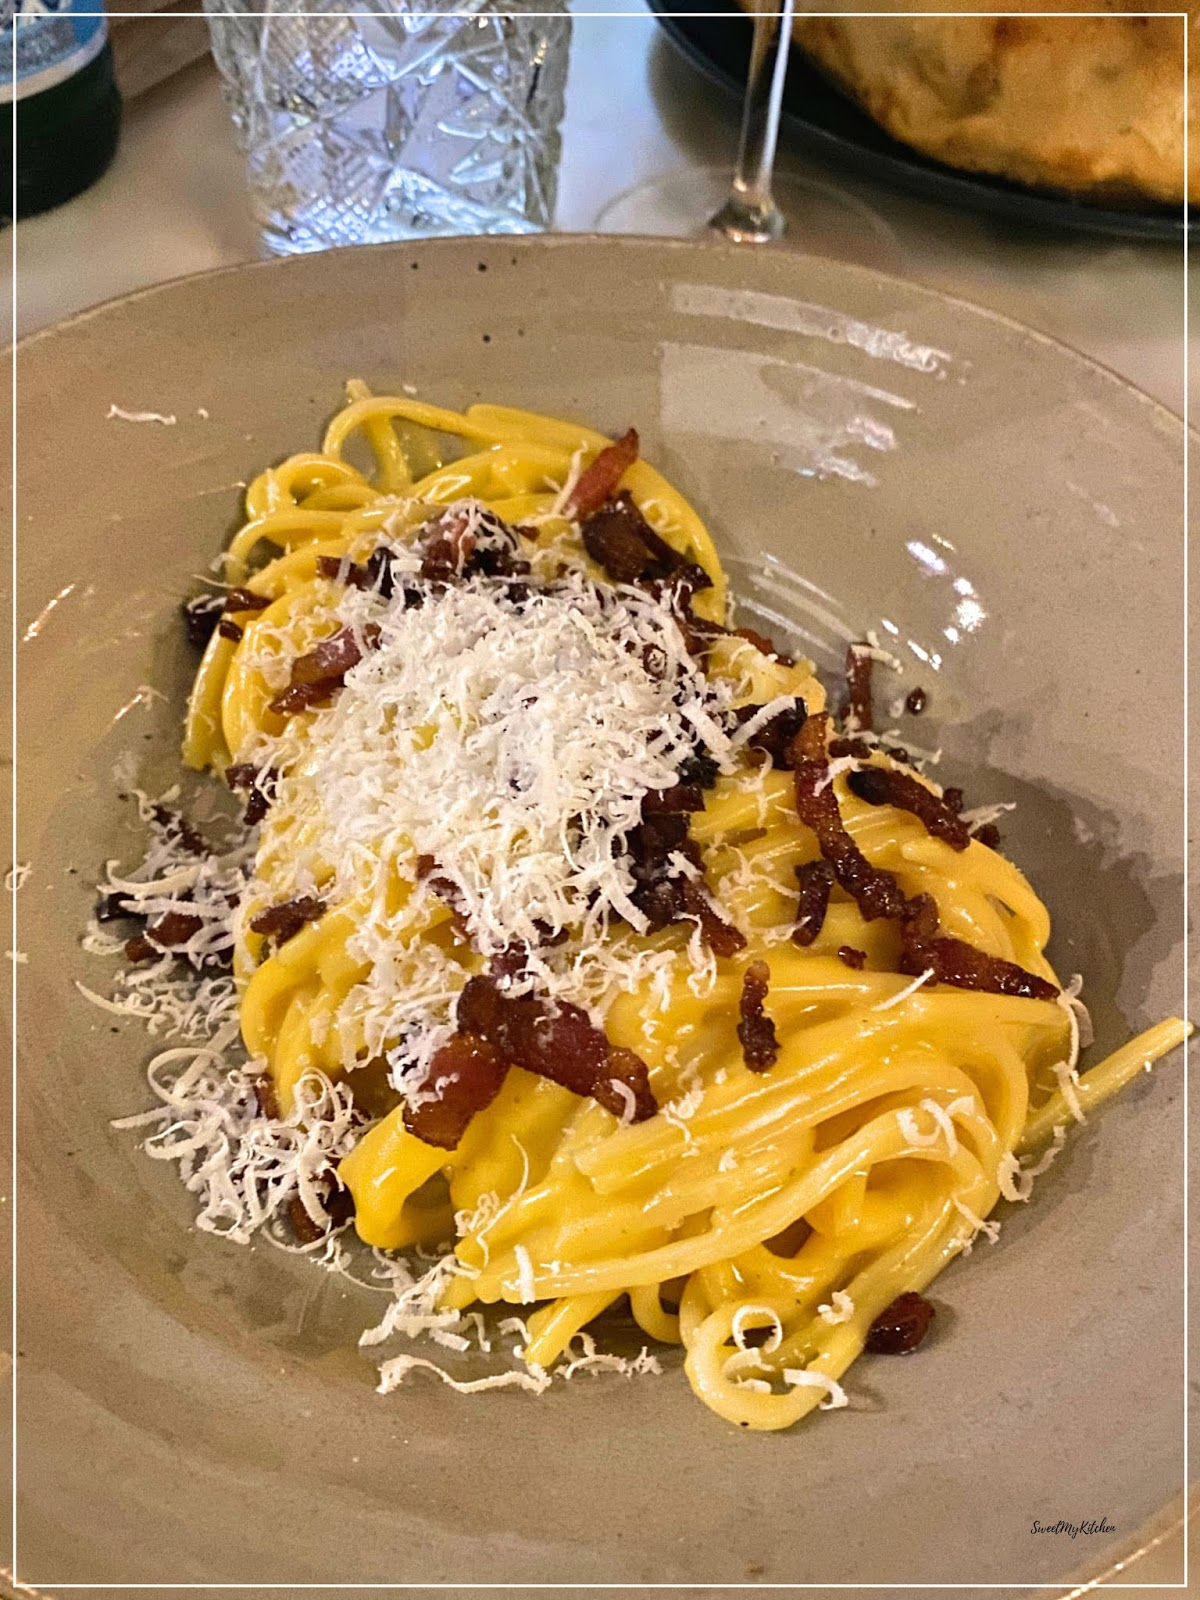 Visconti Chiado restaurante italiano massa fresca Carbonara